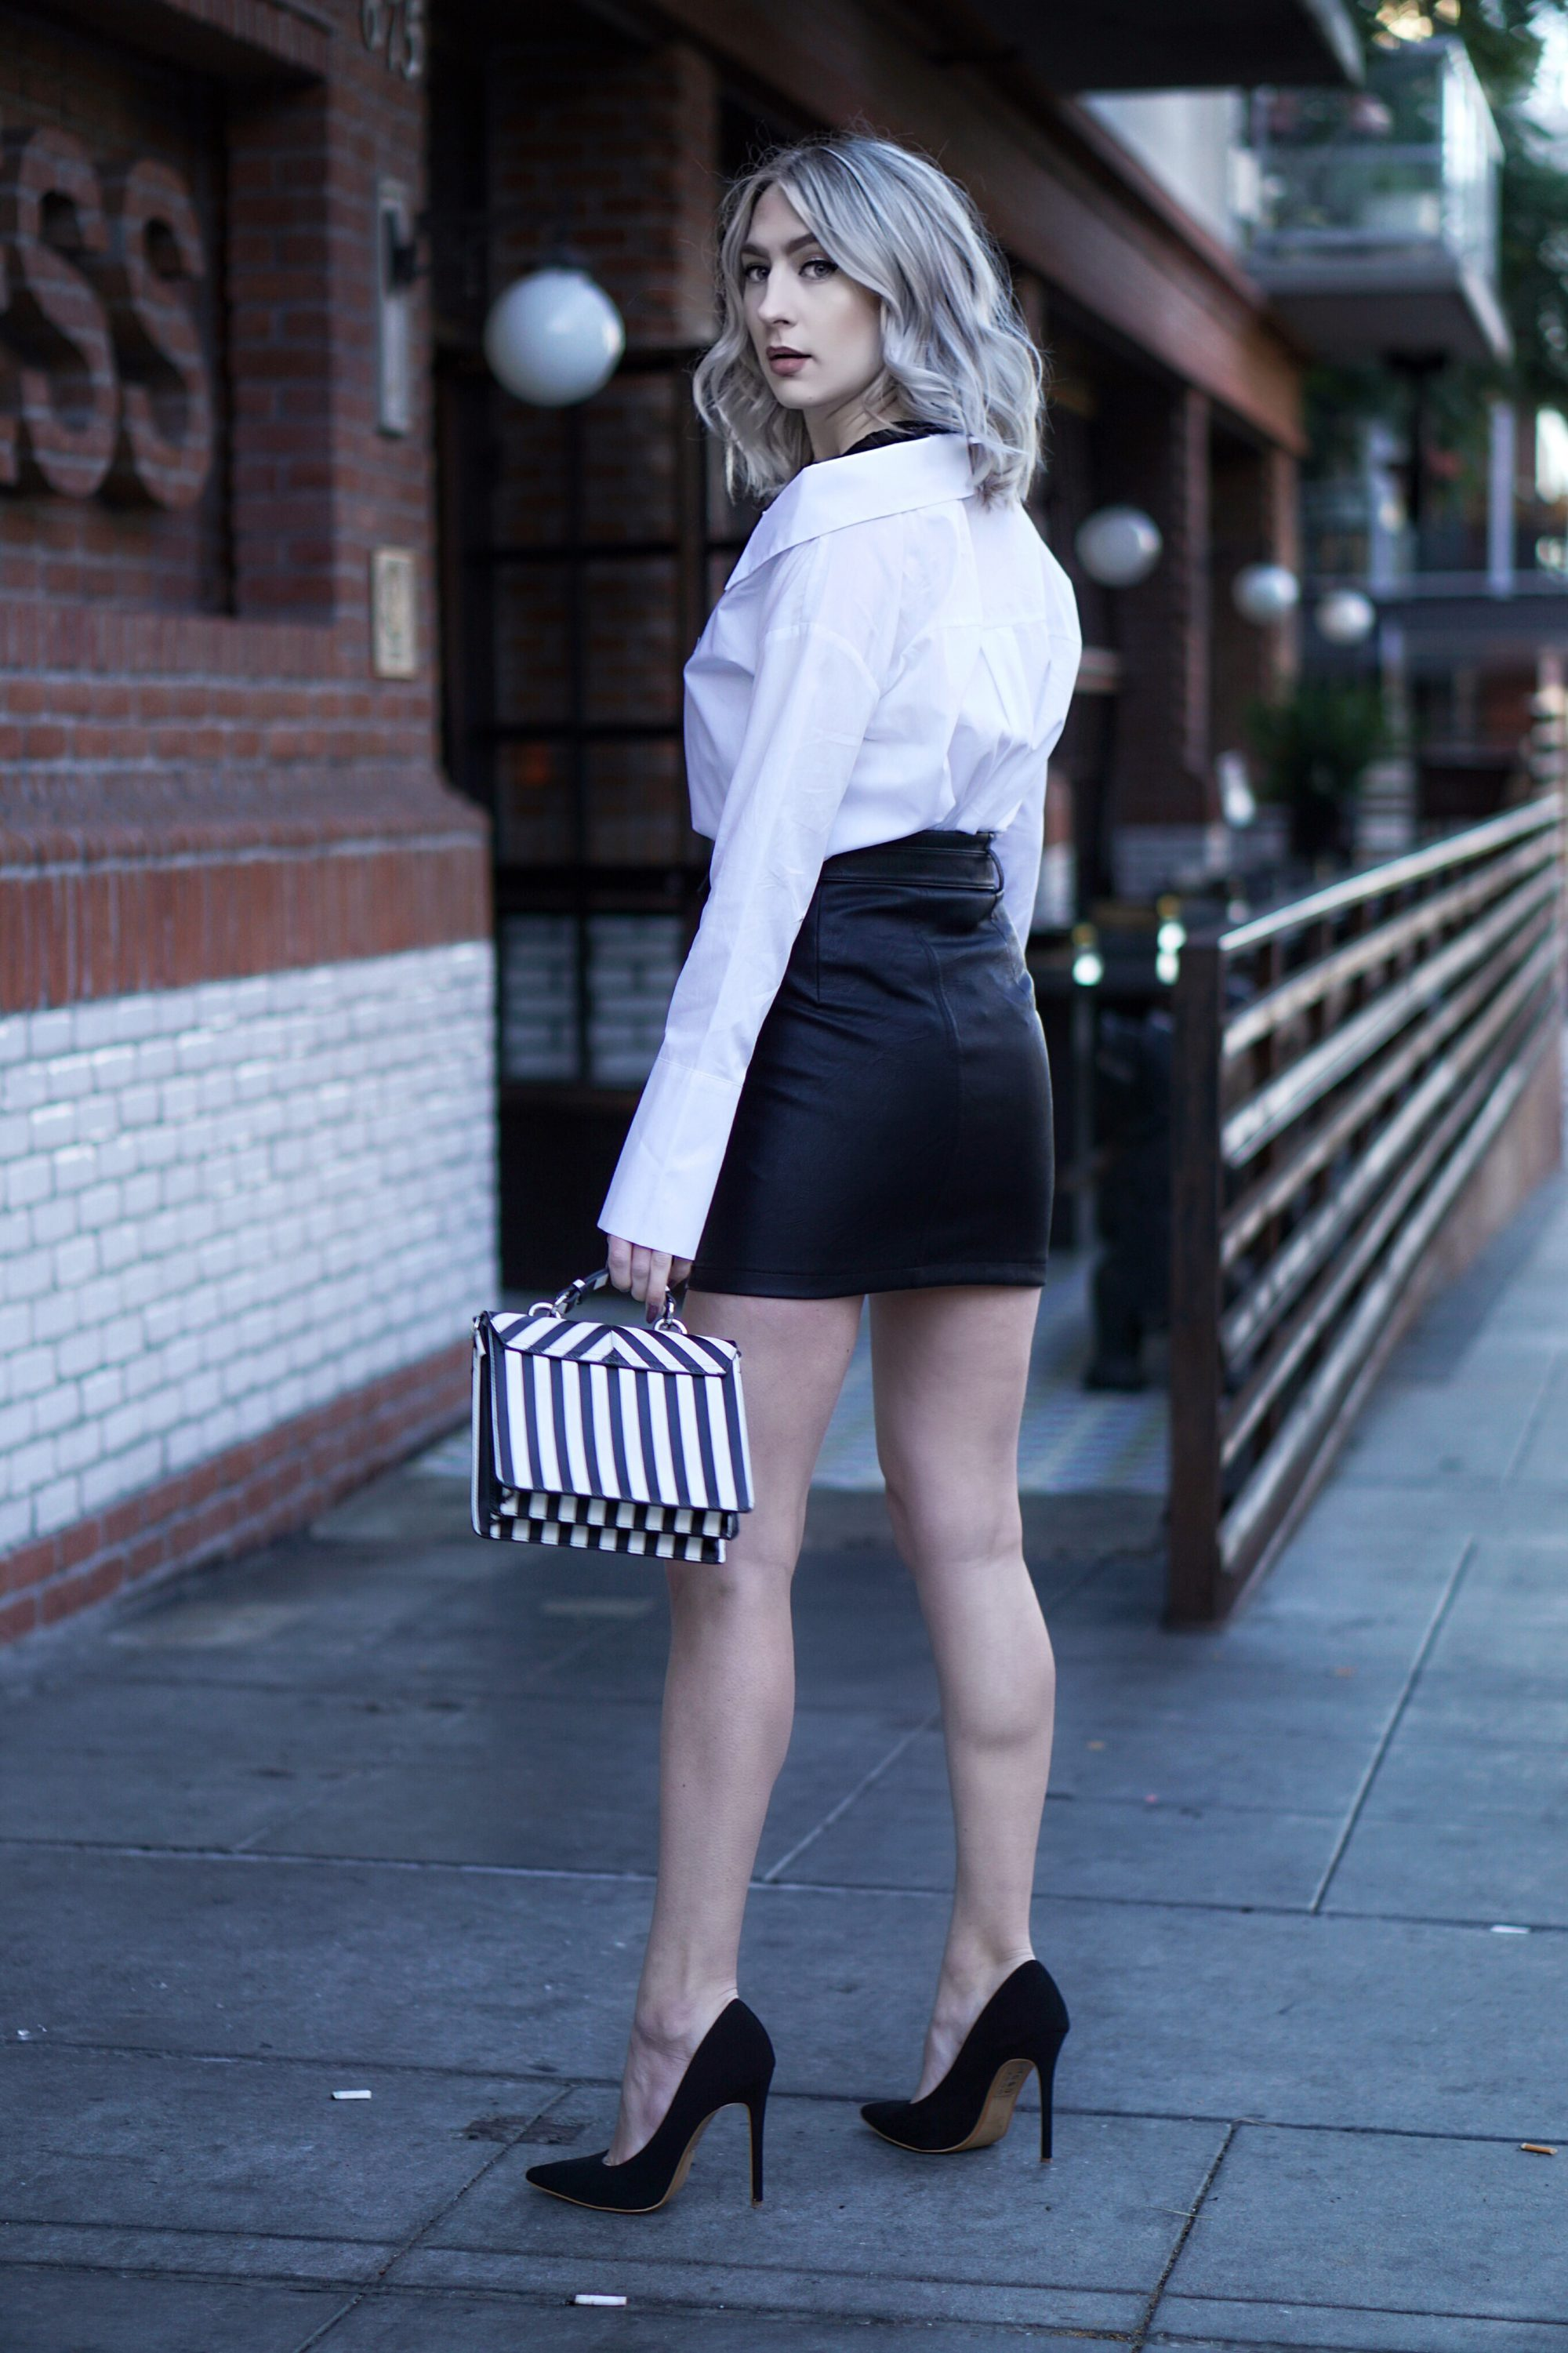 Deconstructed Basics & Leather Skirt